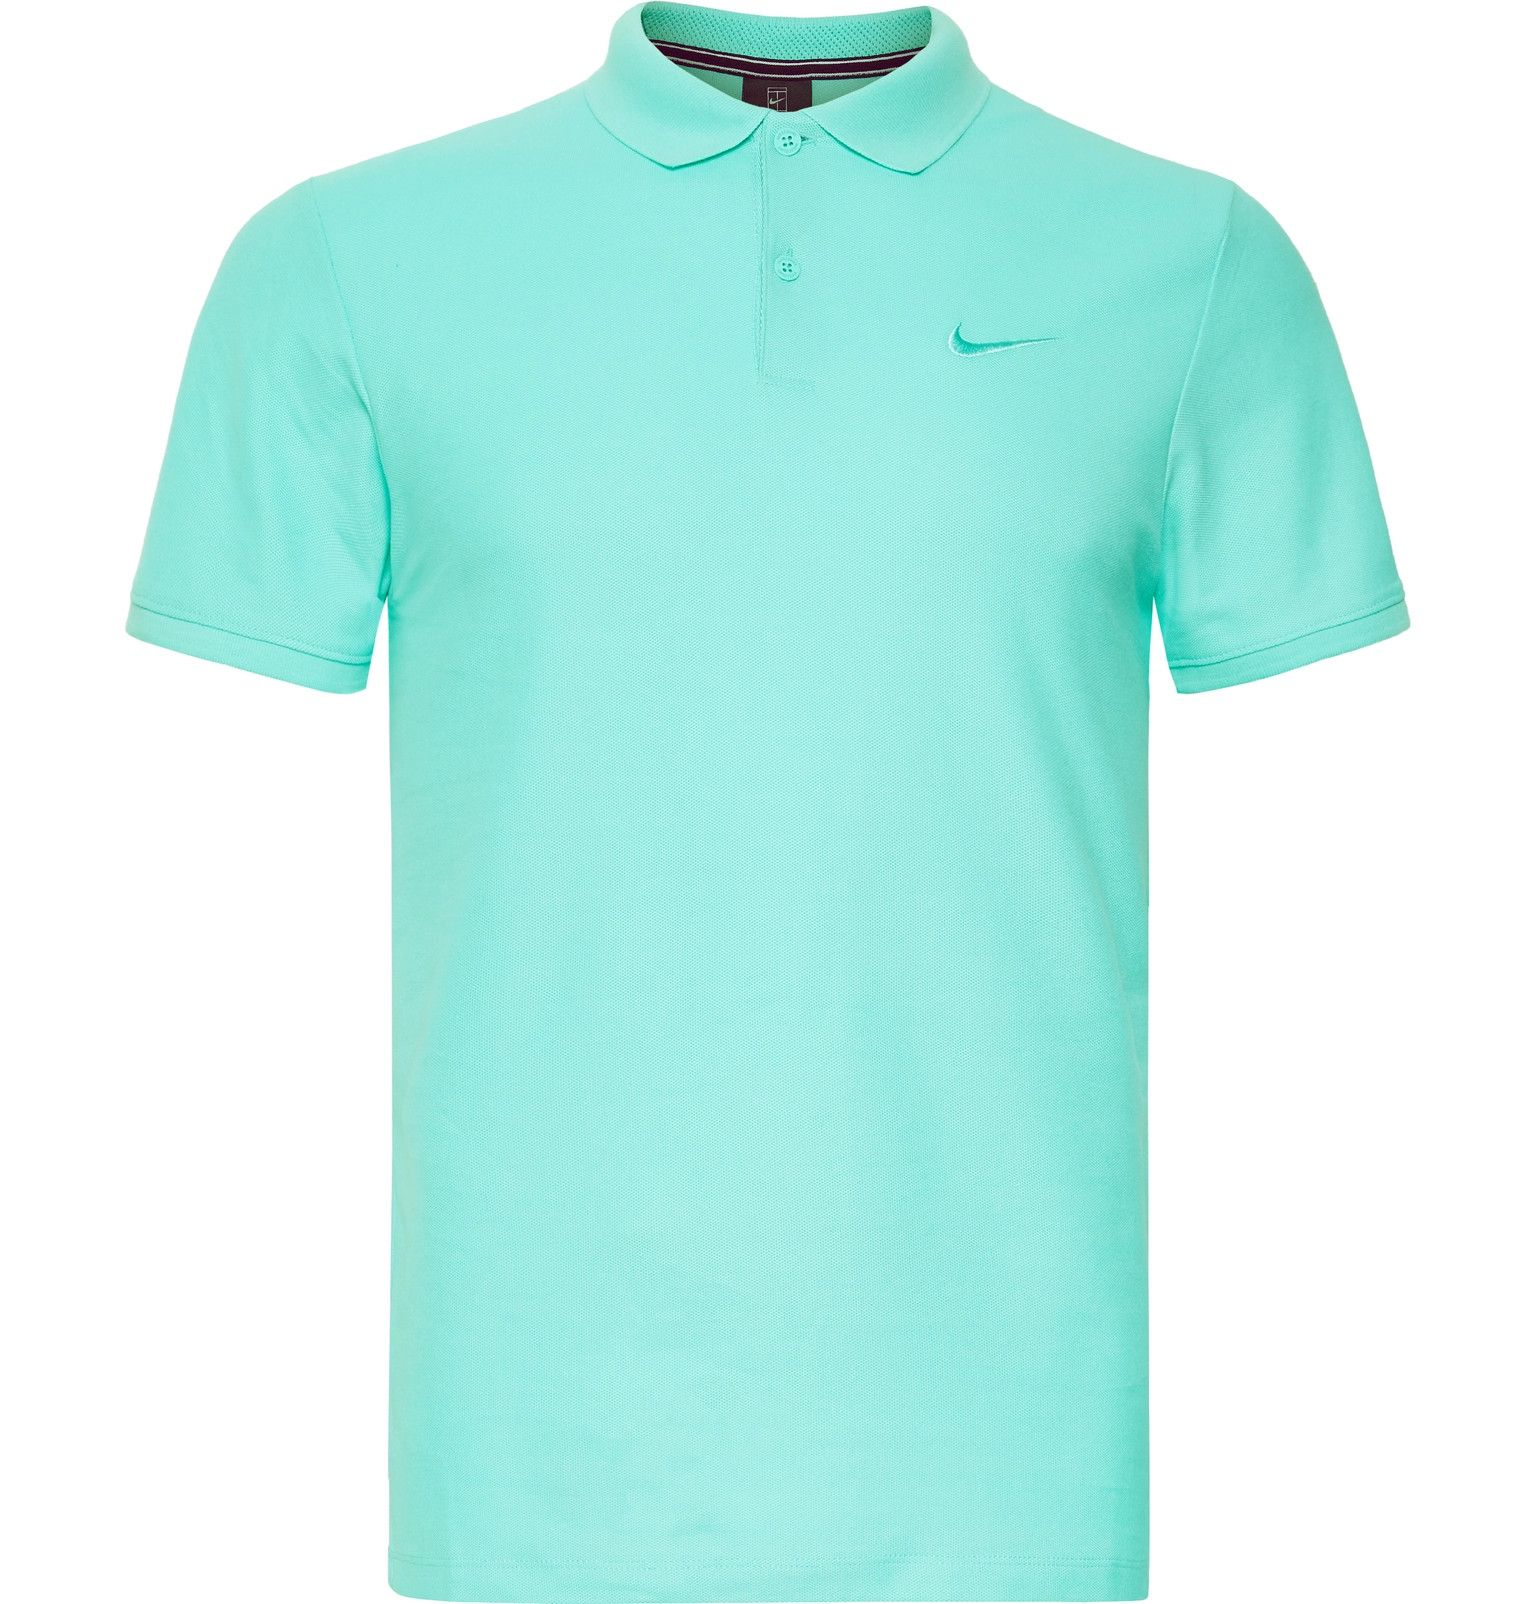 Nike Tennis Nikecourt Advantage Dri Fit Tennis Polo Shirt Men Blue Nike Tennis Tennis Shirts Tennis Polo